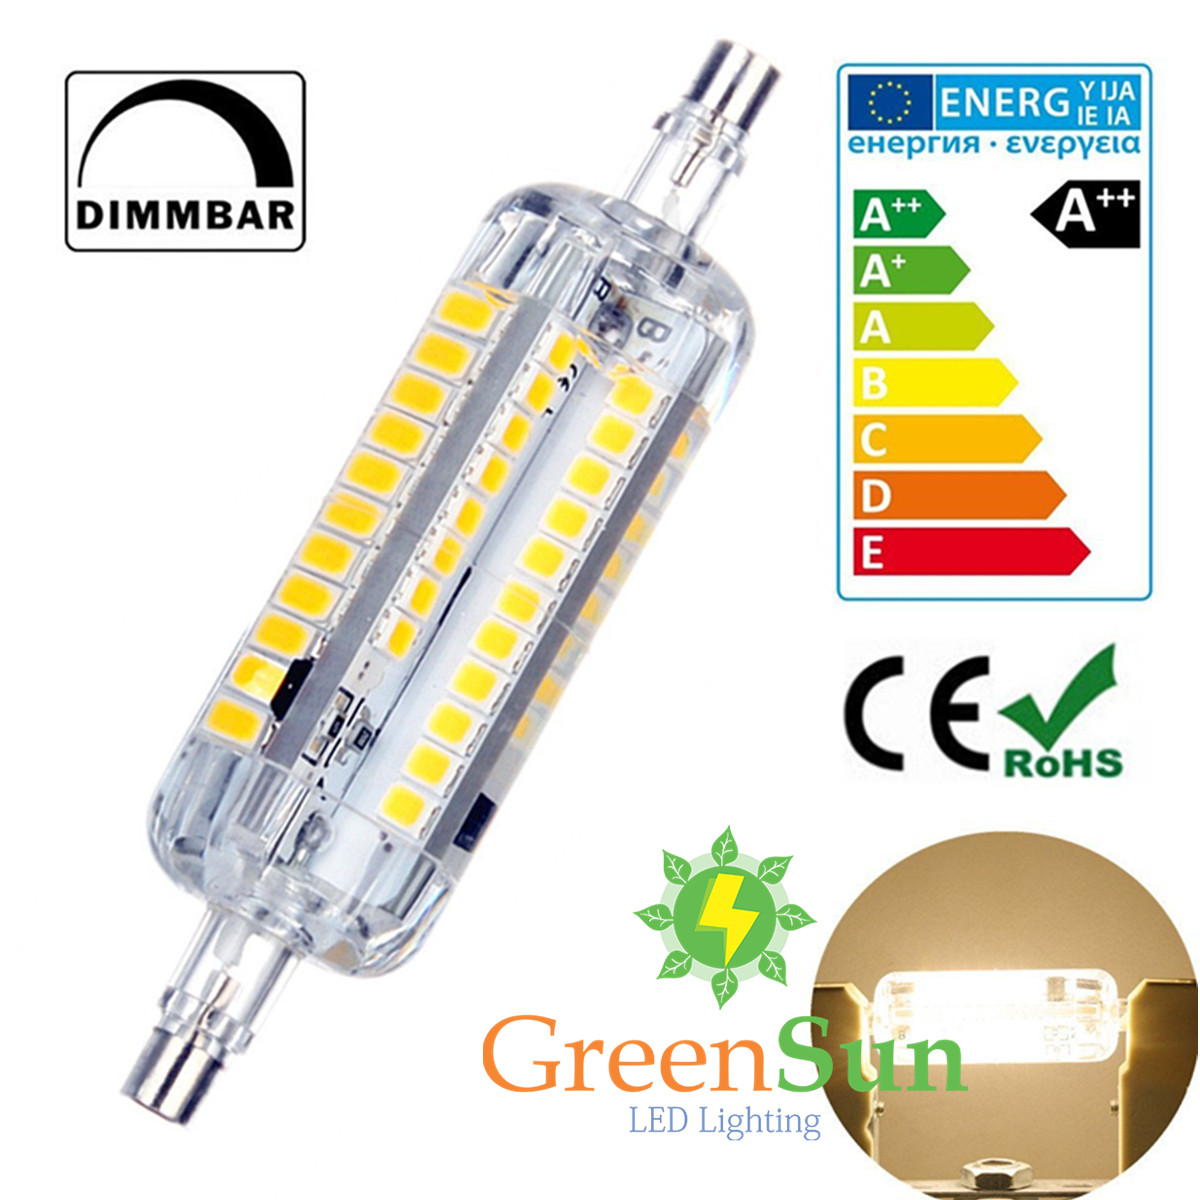 de r7s led dimmbar 10w 15w 78mm 118mm 2835smd lampe. Black Bedroom Furniture Sets. Home Design Ideas